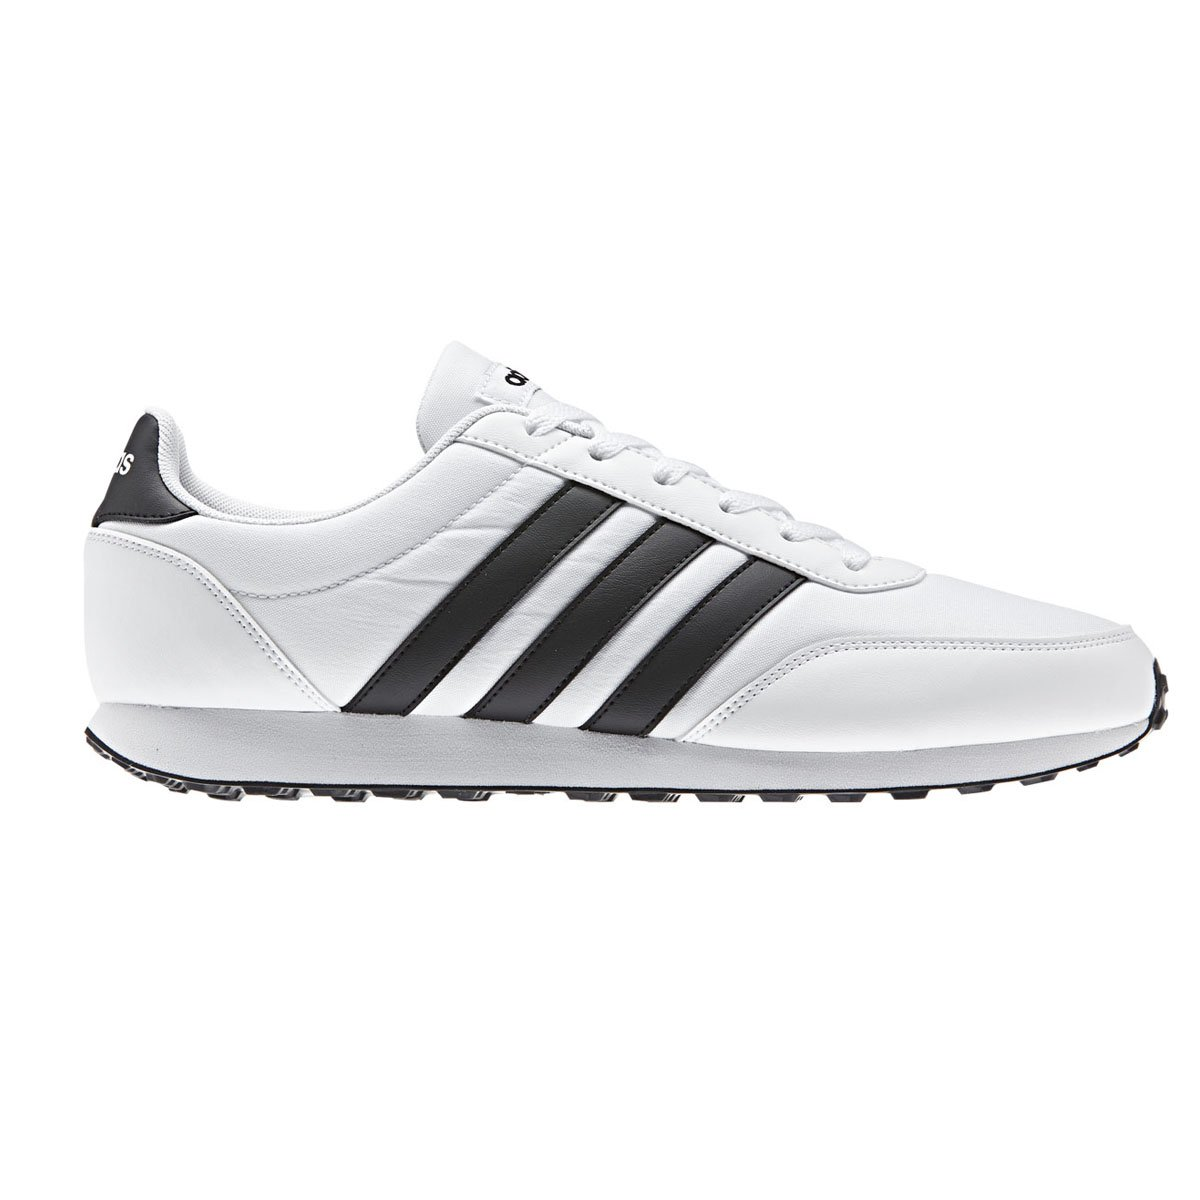 new arrival be284 332b6 Tenis Casual Neo V Racer 2.0 Adidas - Caballero